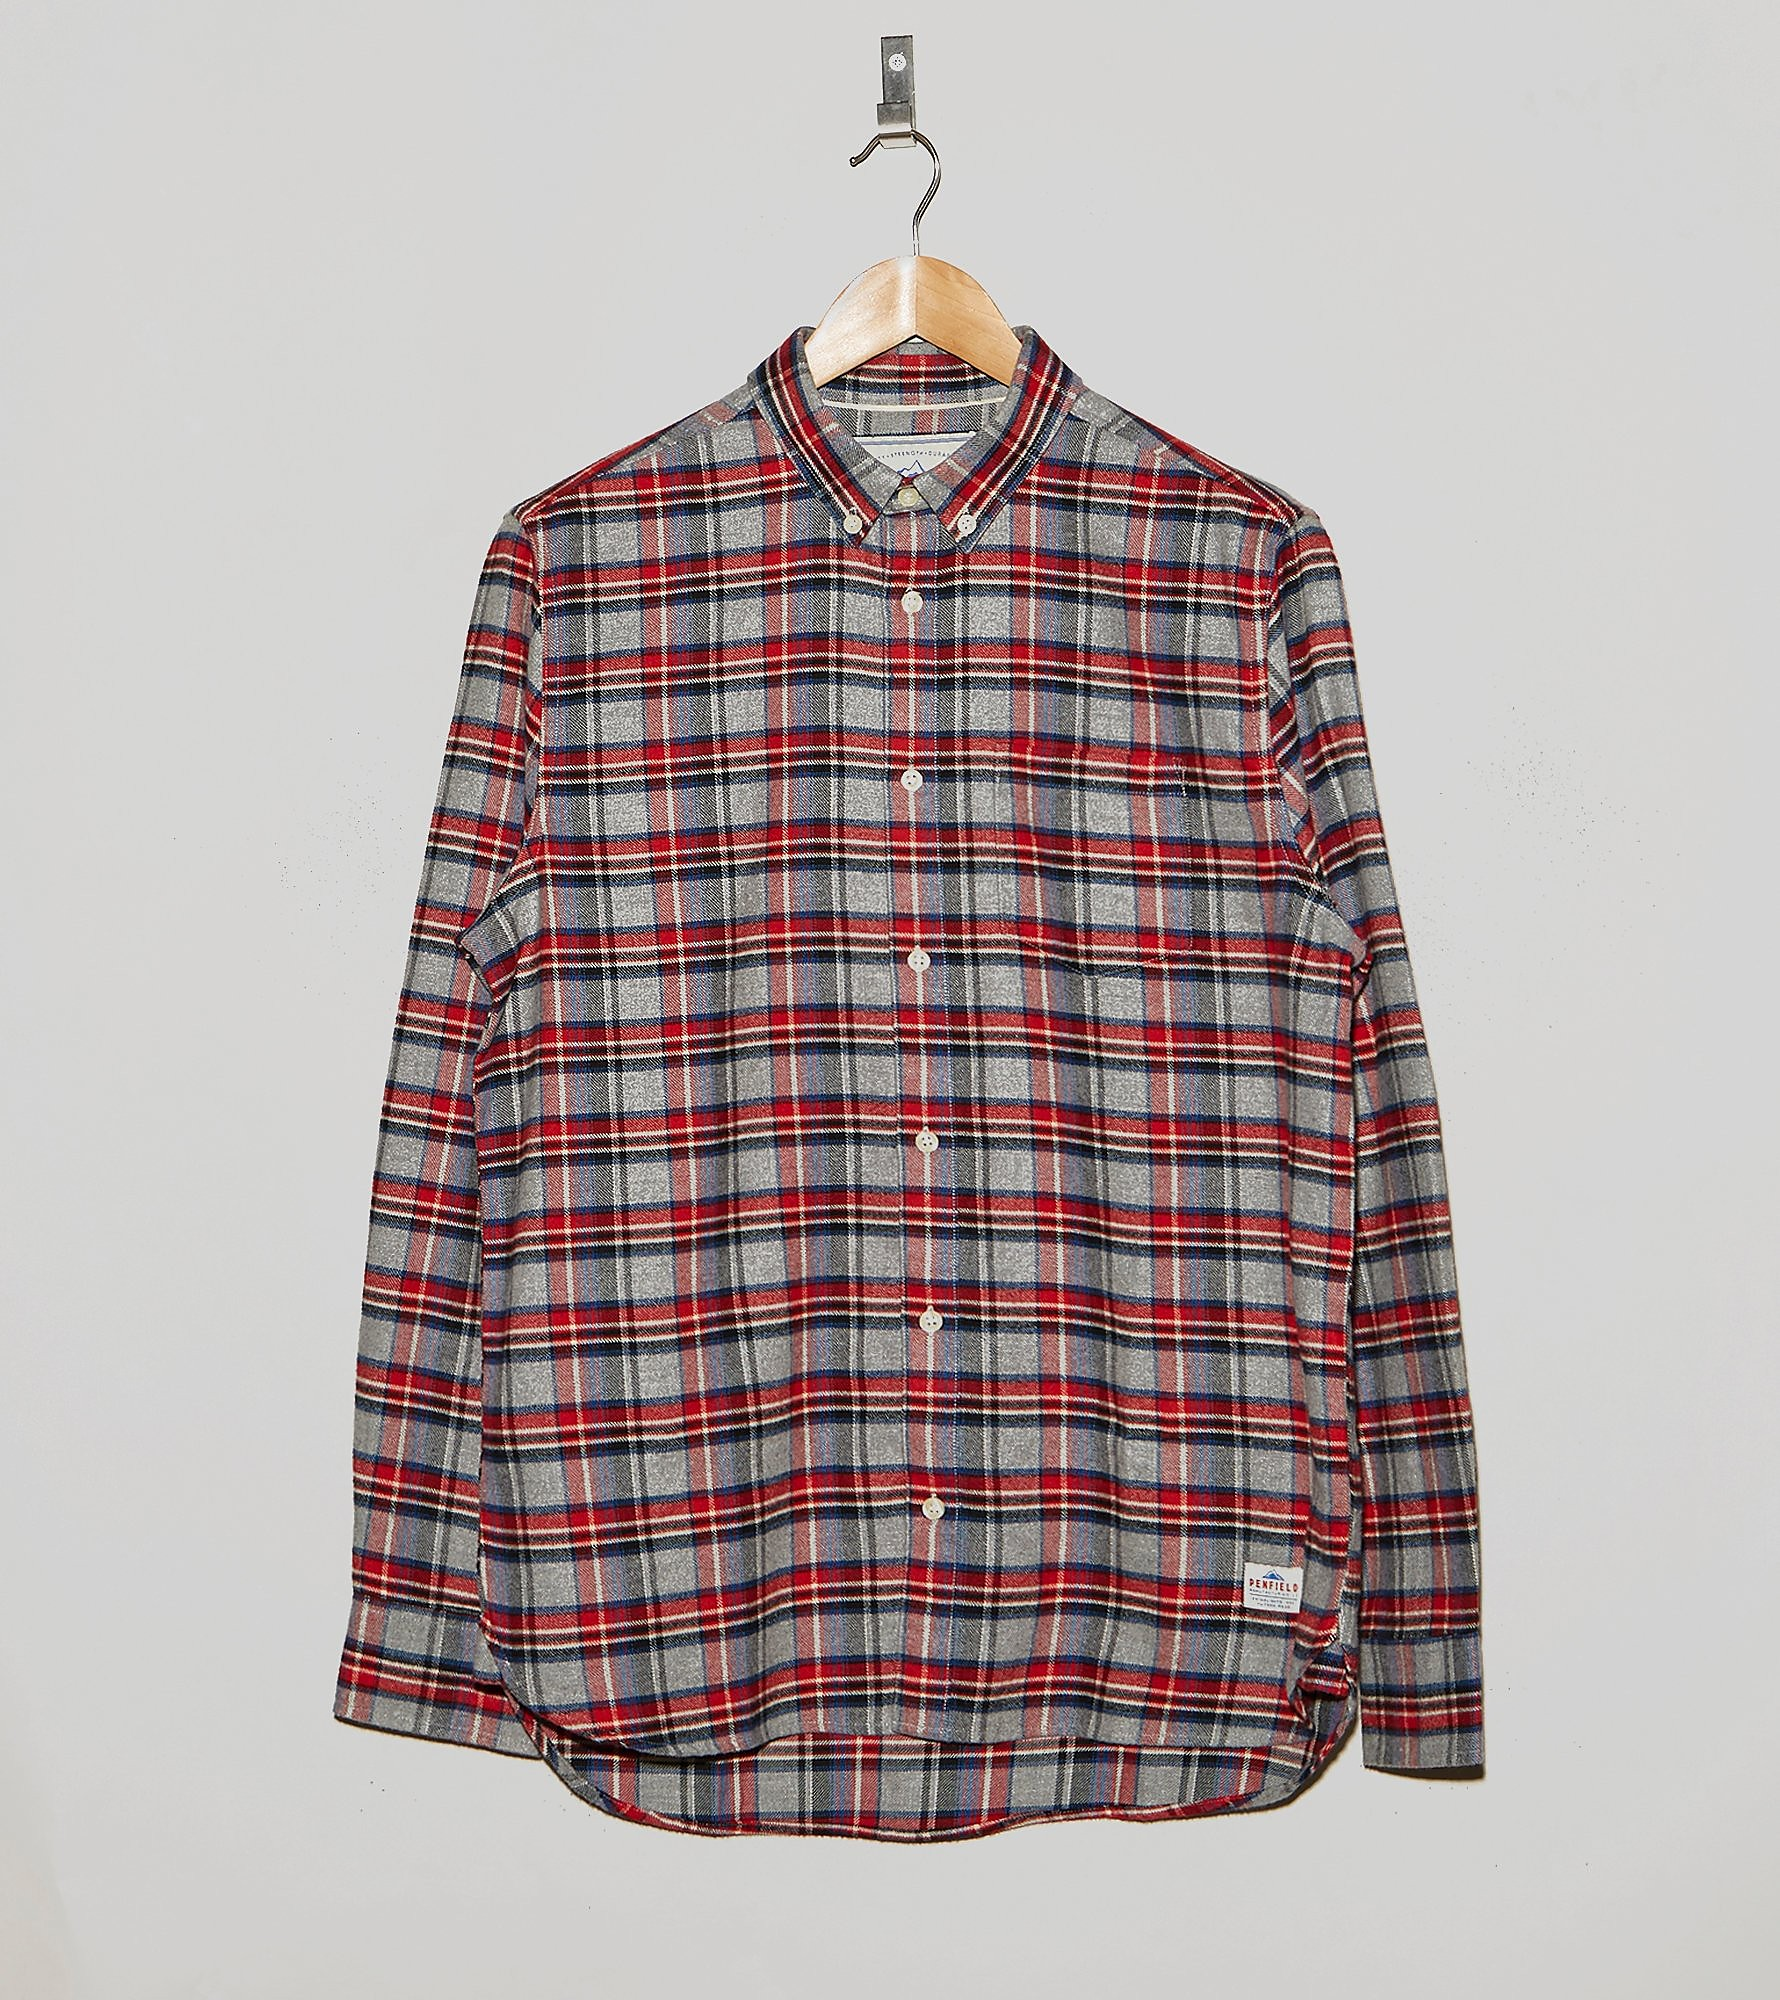 Penfield Ingersoll Checked Shirt